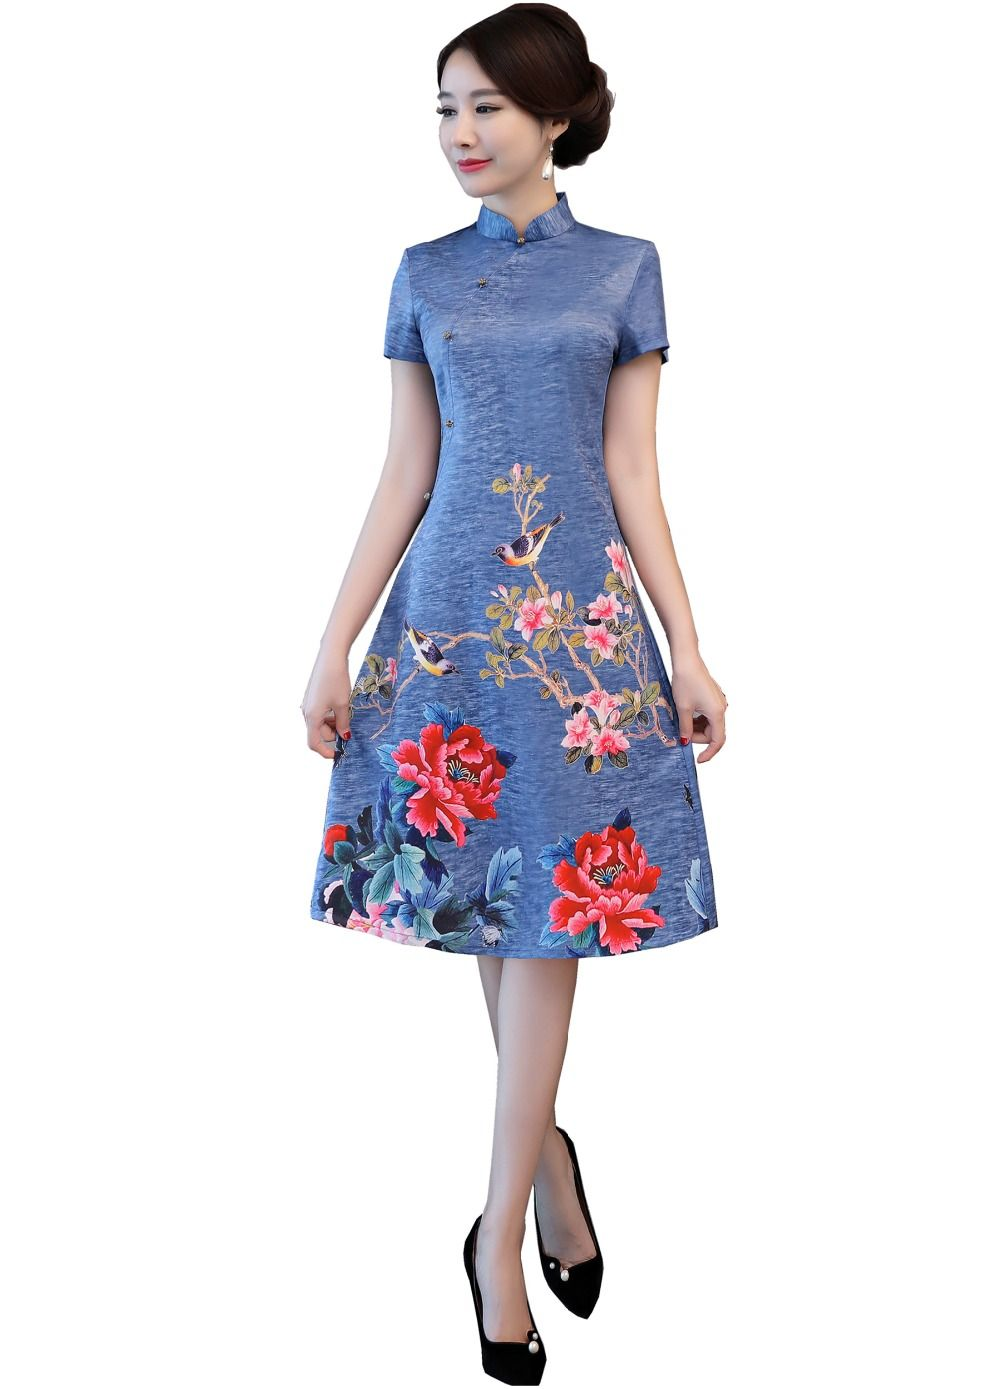 56eb9c347 Shanghai Story 2018 Qipao chinese Traditional dress Knee Length Cheongsam  Oriental Style Dress Chinese Women's Clothing-in Cheongsams from Novelty &  Special ...